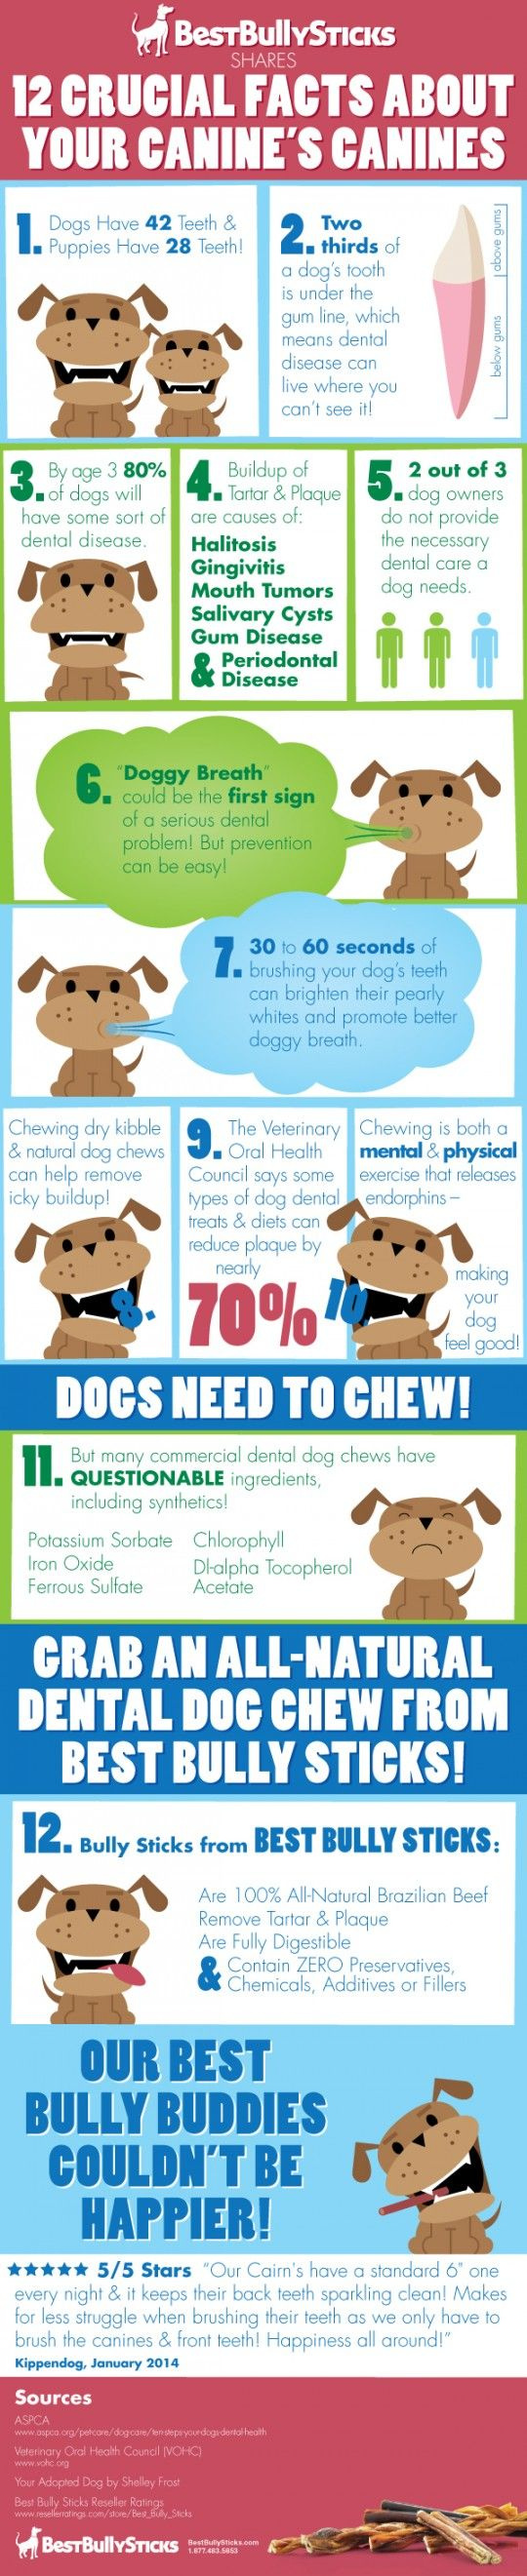 12 Facts About Your Canine's Canines Infographic